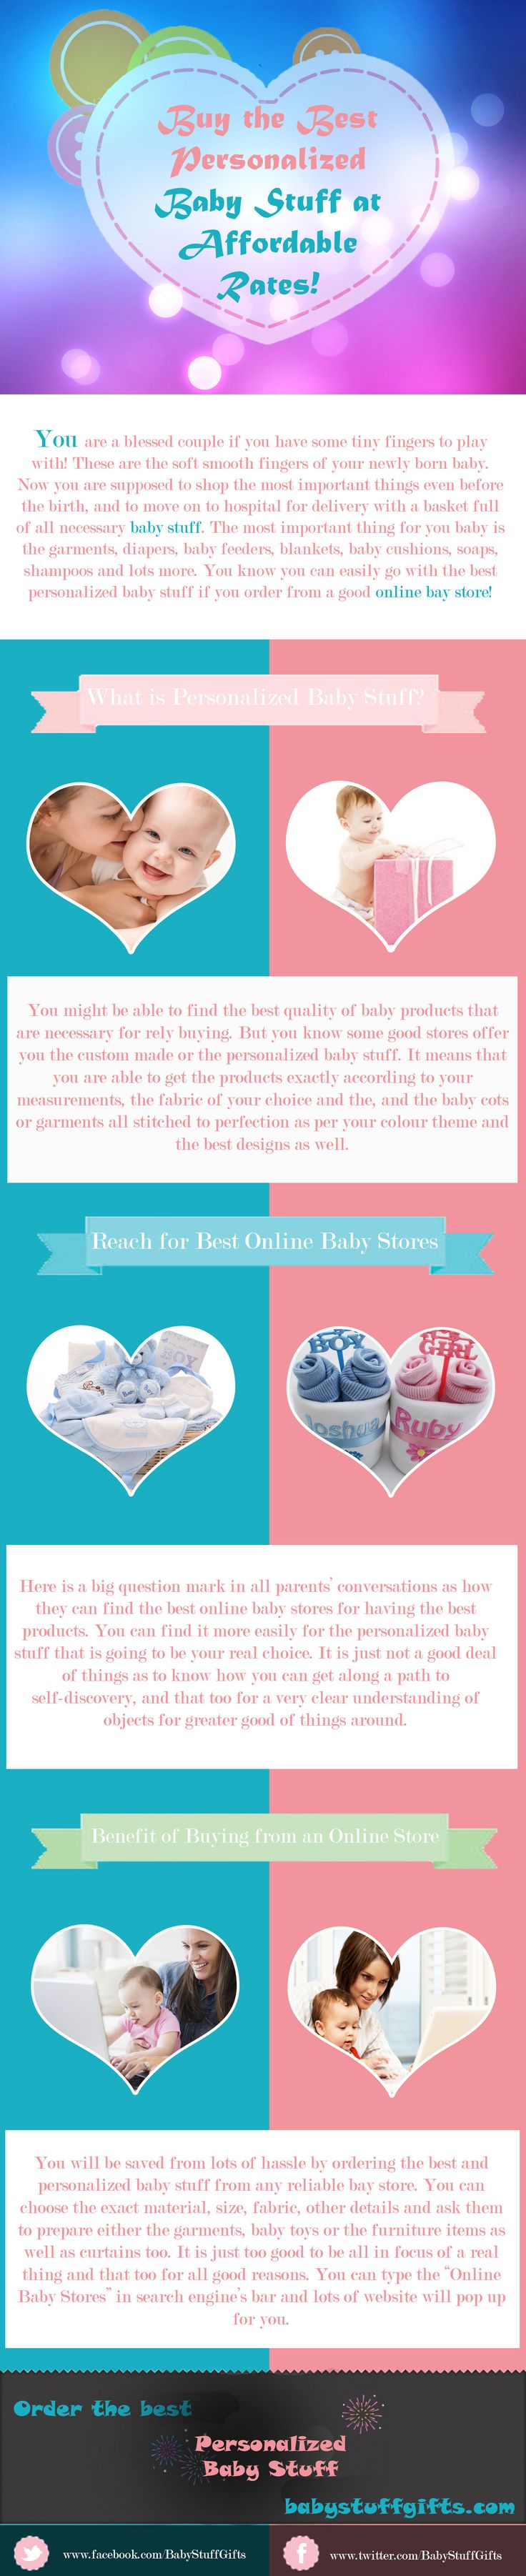 how to Find our personalized baby gifts online in cheap price.